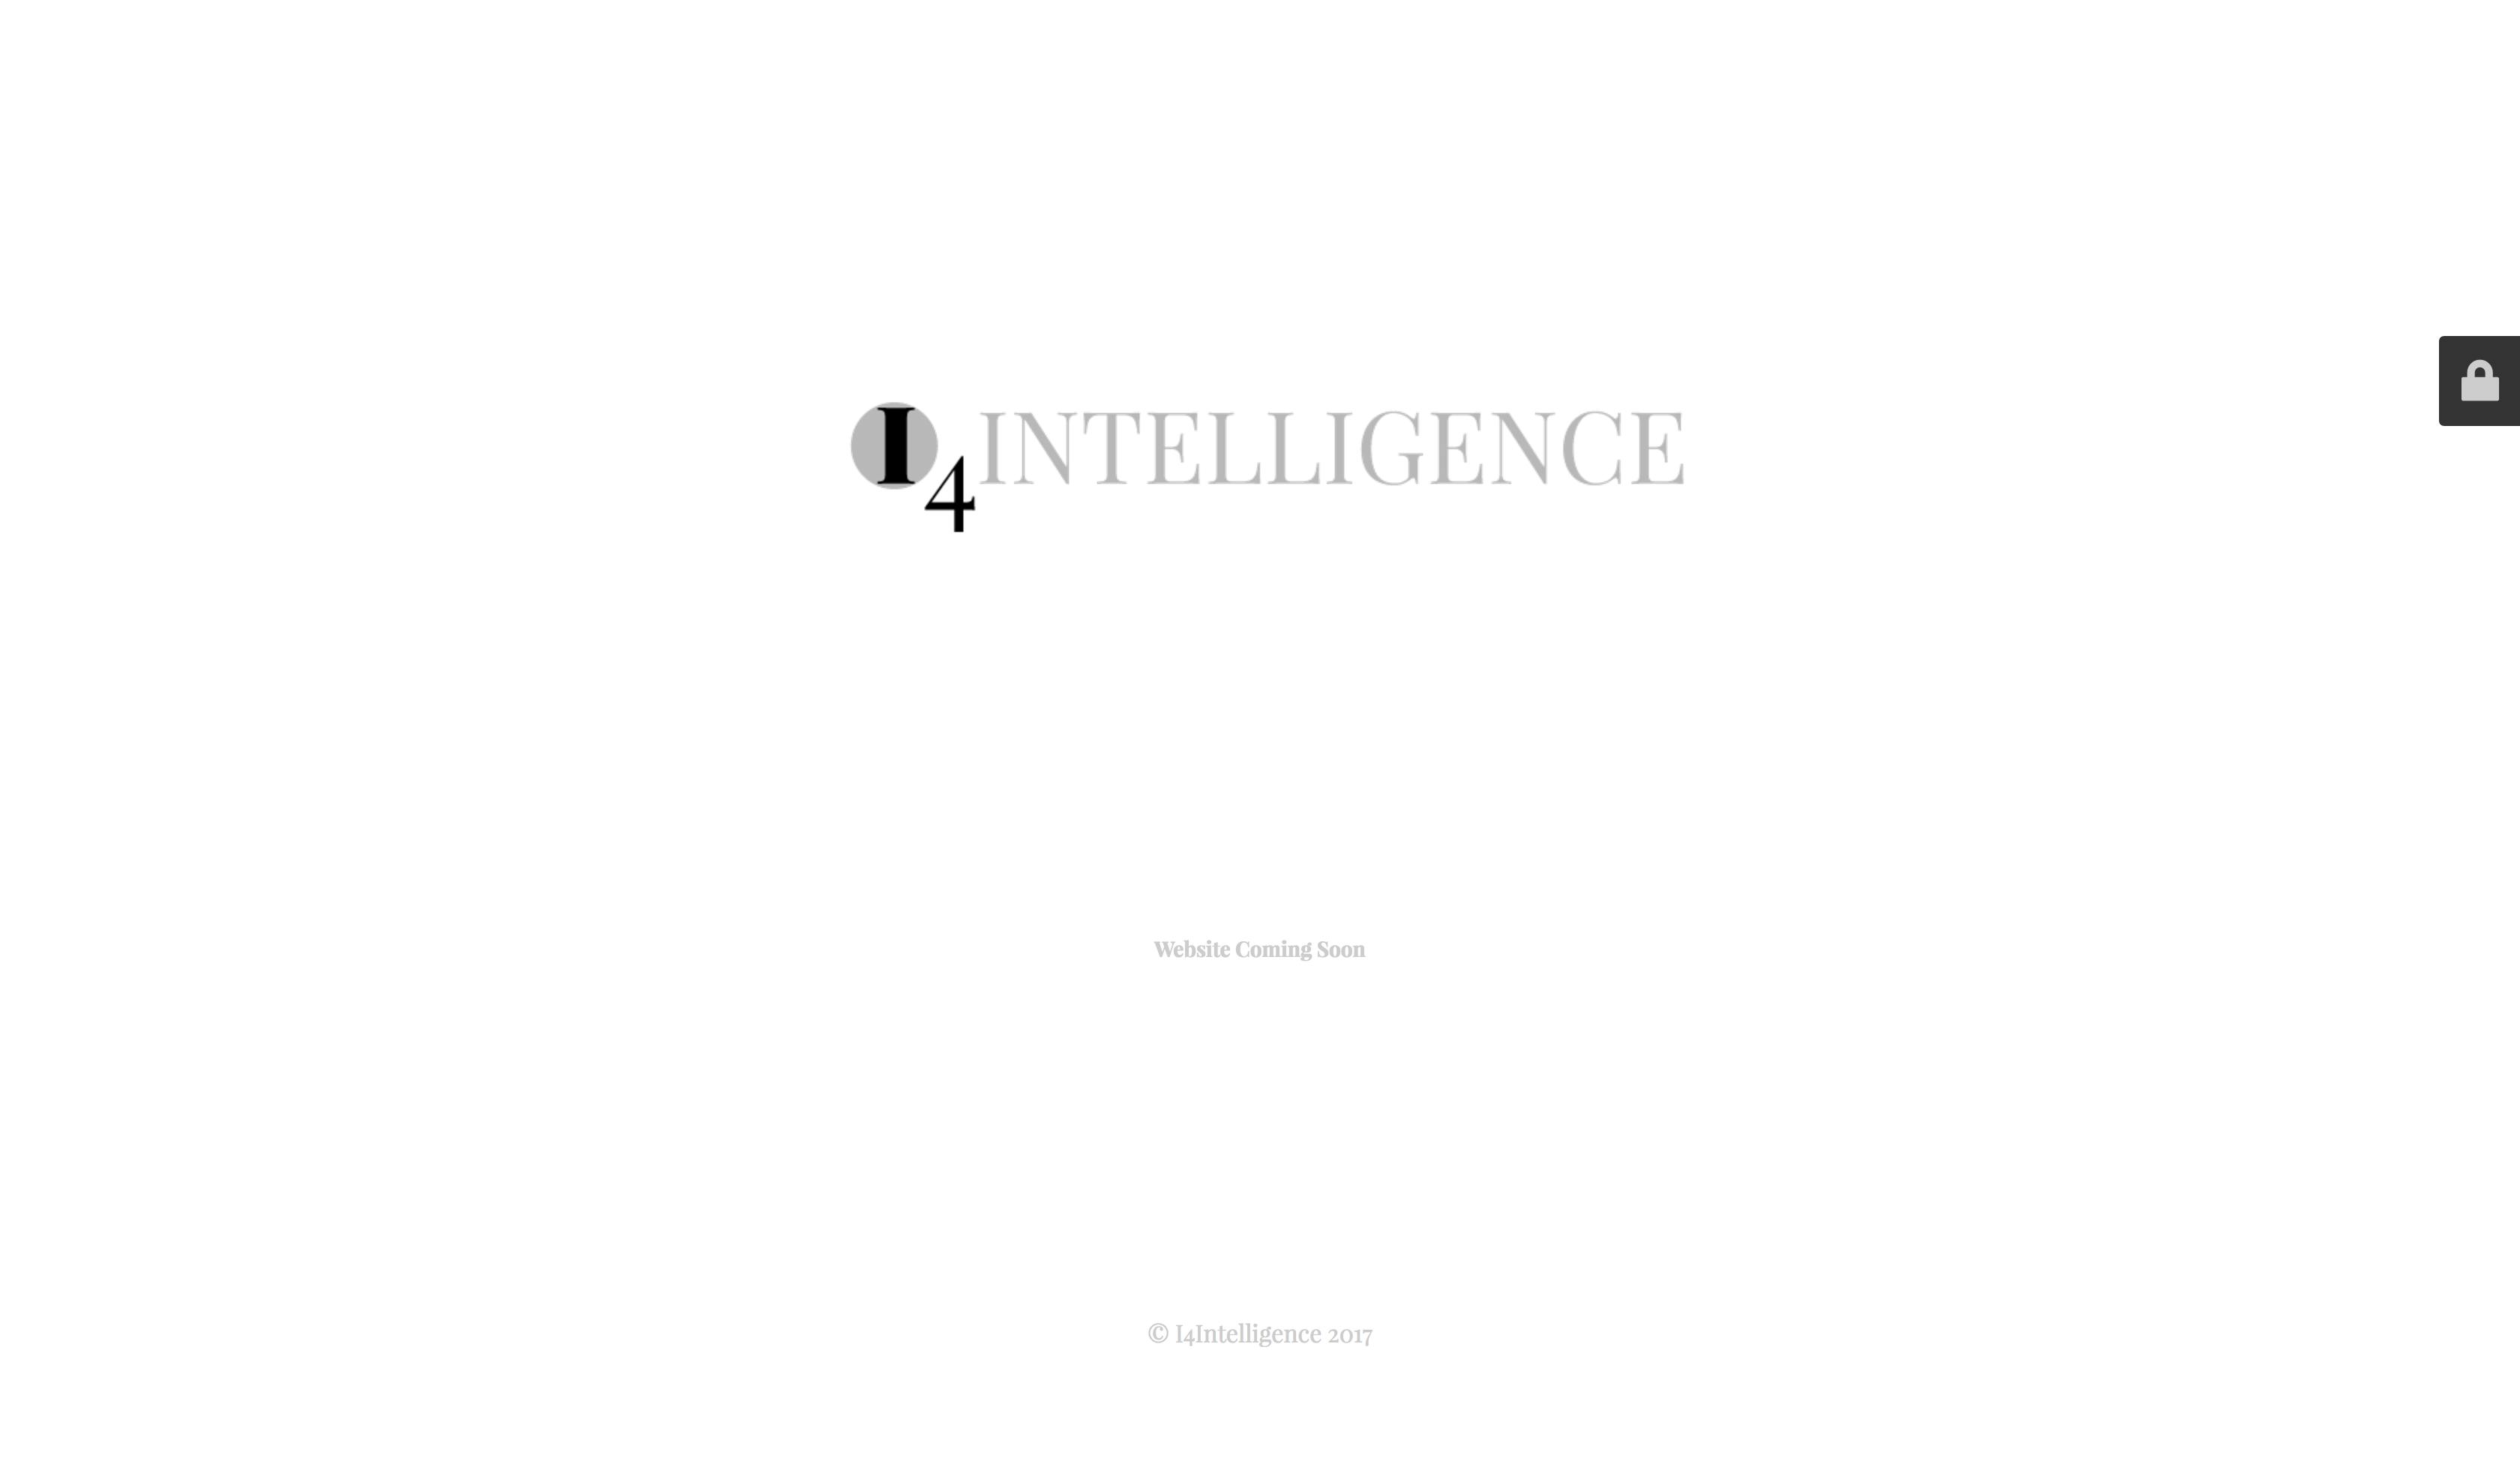 I4Intelligence Website